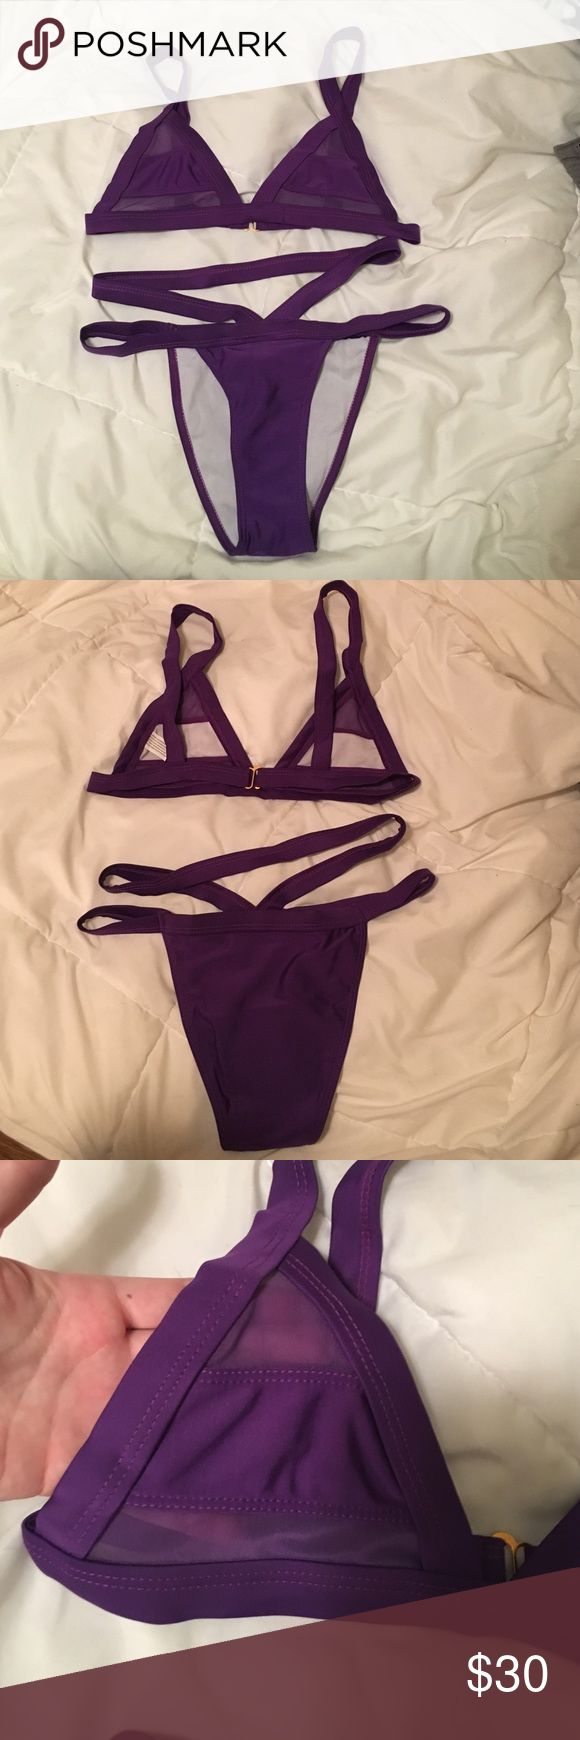 Mesh cut out purple high waisted bikini Never worn, brand new, bright purple high waisted bikini. Top features mesh cut outs and a gold clasp. Adorable bathing suit! Swim Bikinis